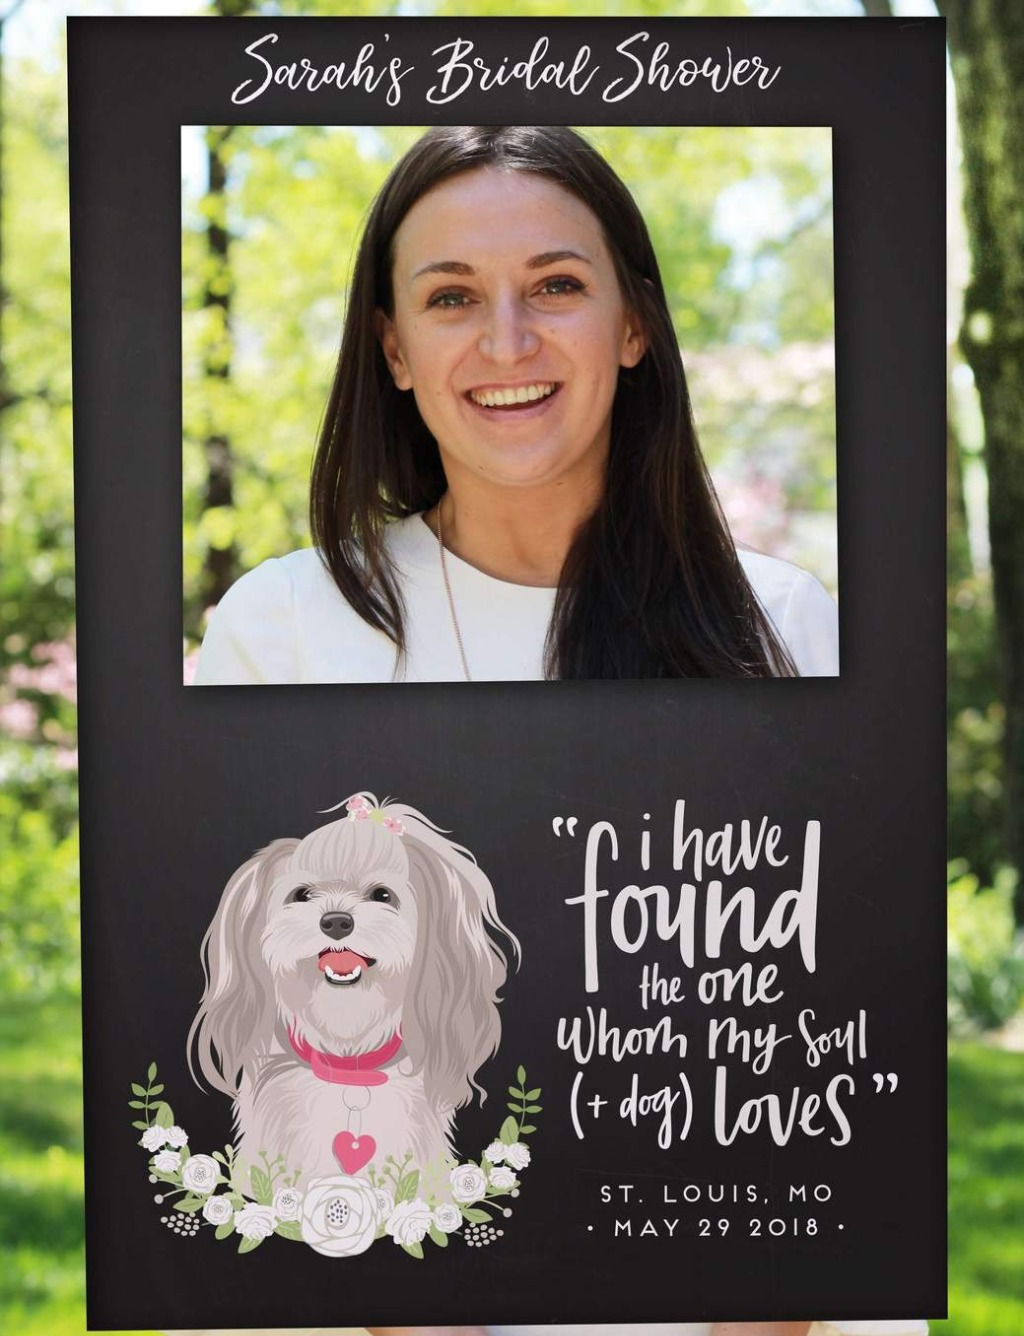 Our Chalkboard Photo Frame Prop with Pet Portrait is a super fun way to bring a little personality to your bridal shower or wedding